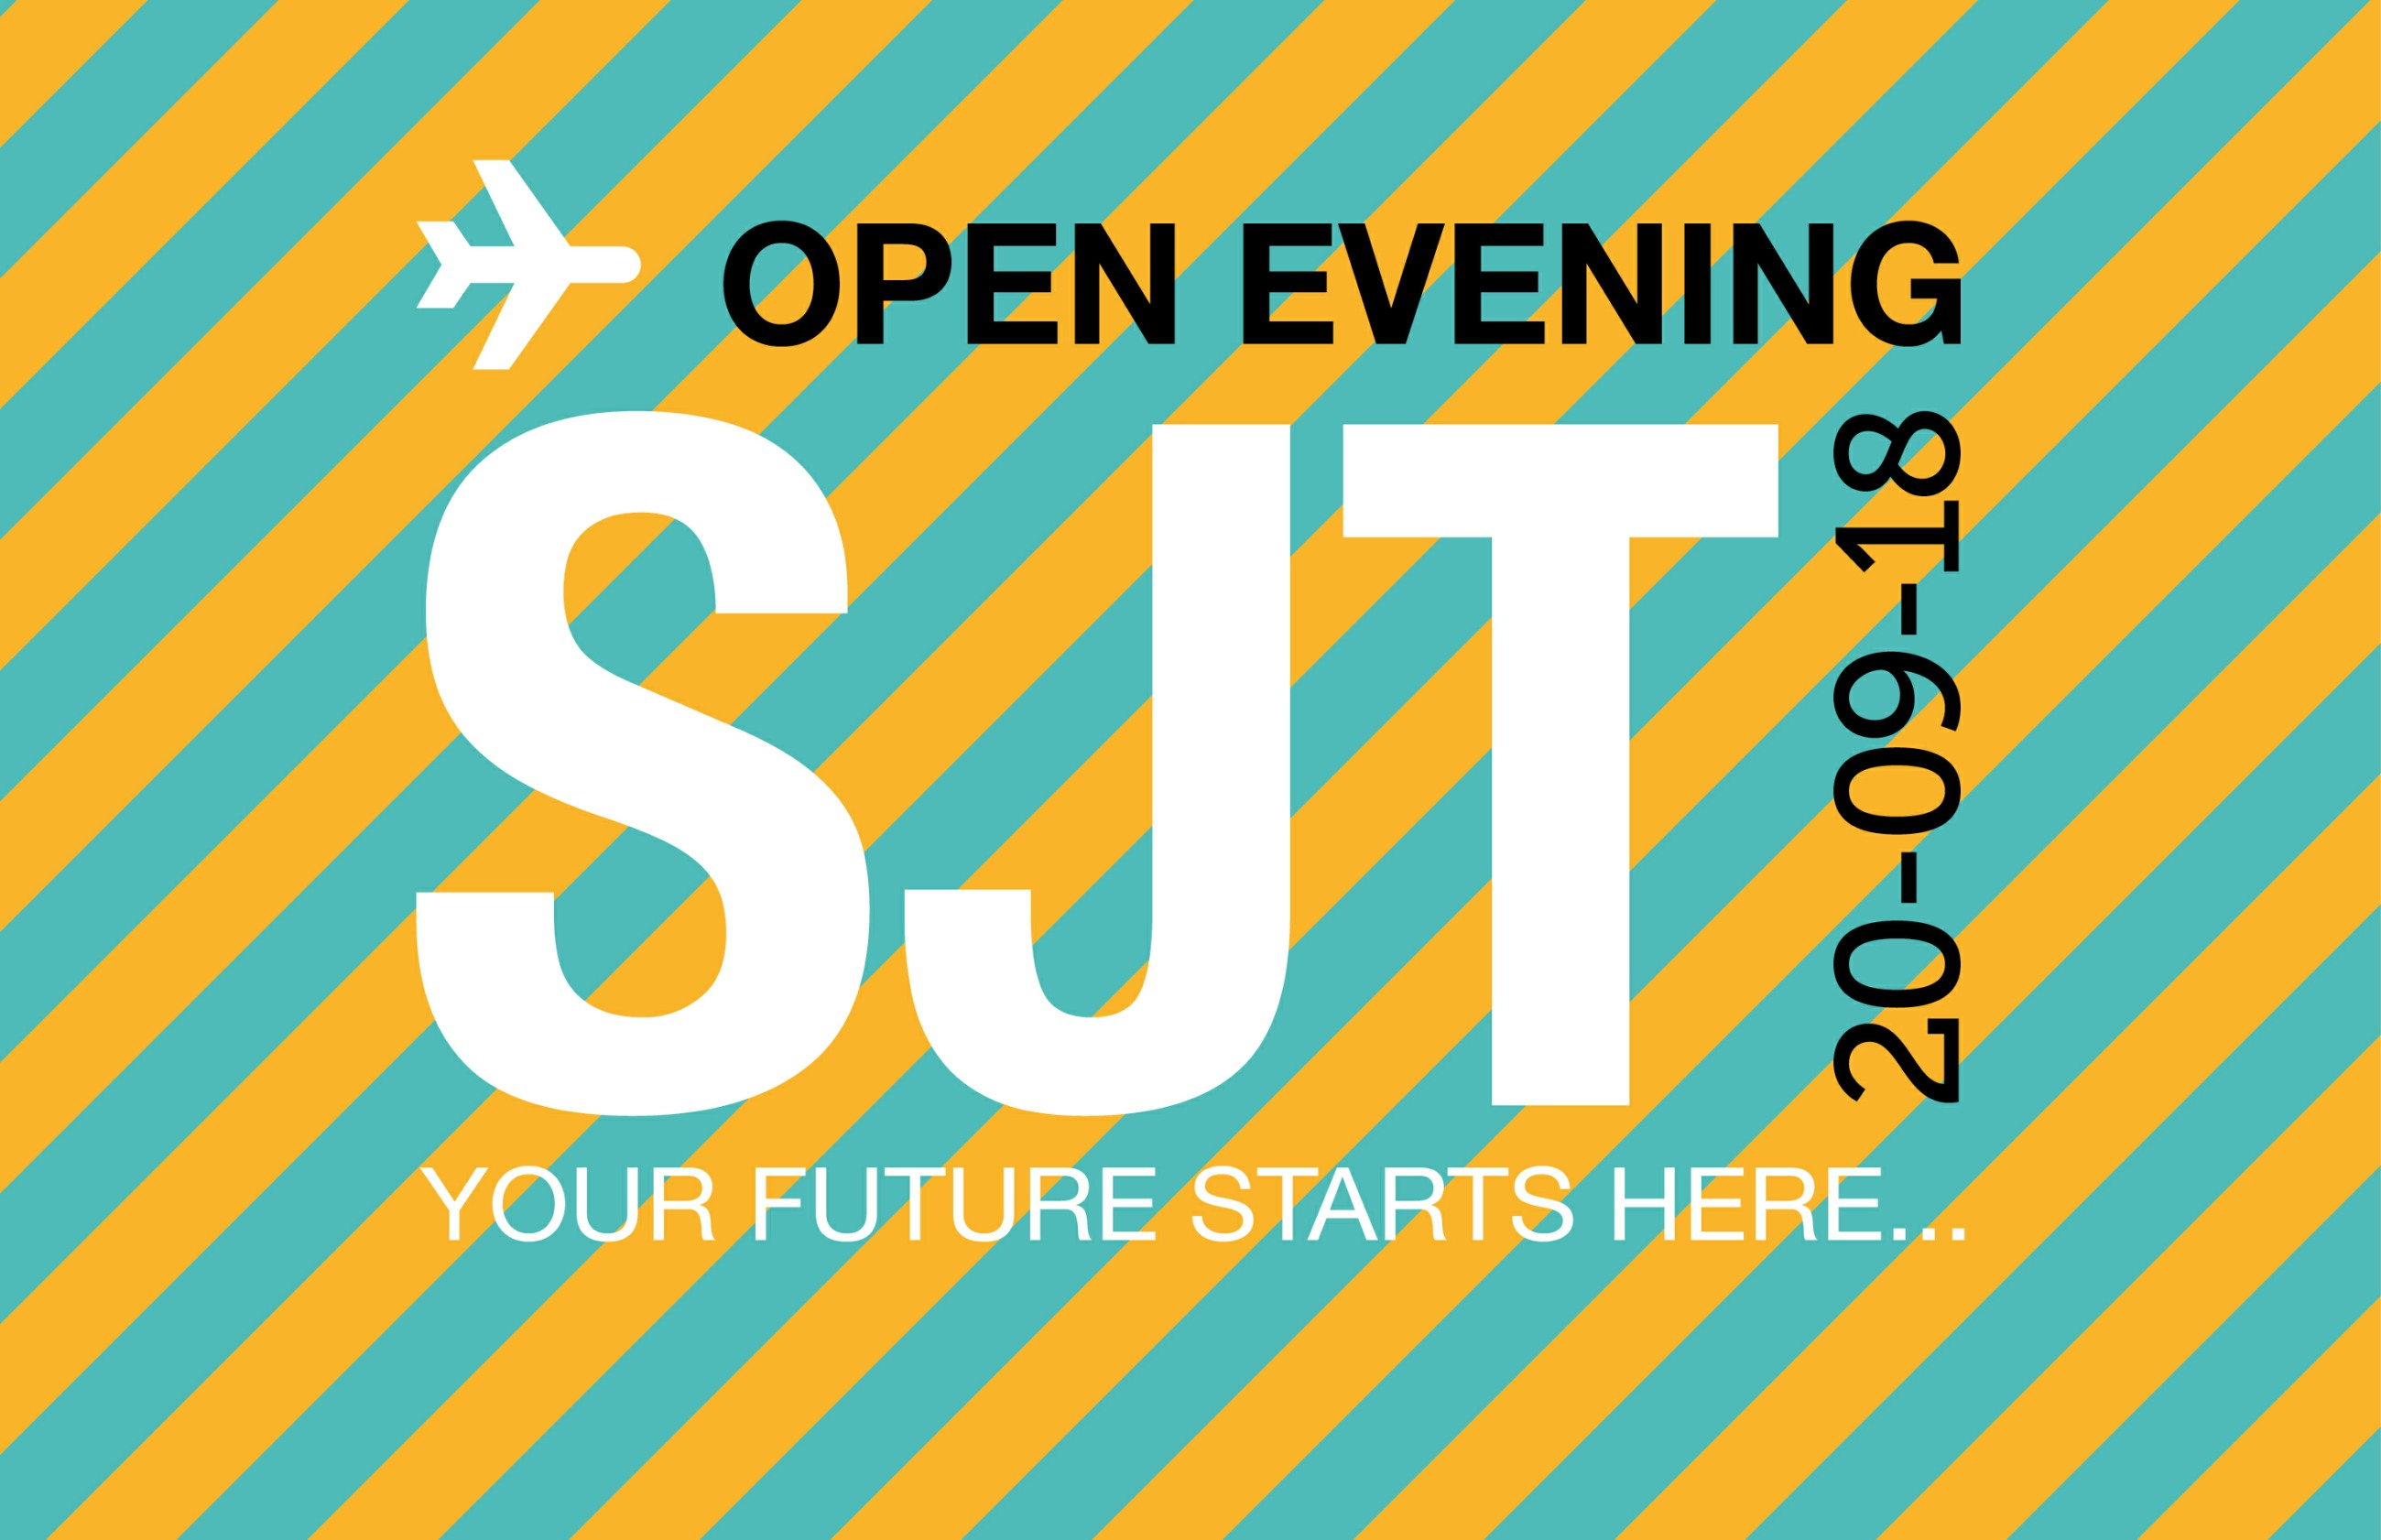 Sir John Talbot's School Open Evening takes place on September 20th